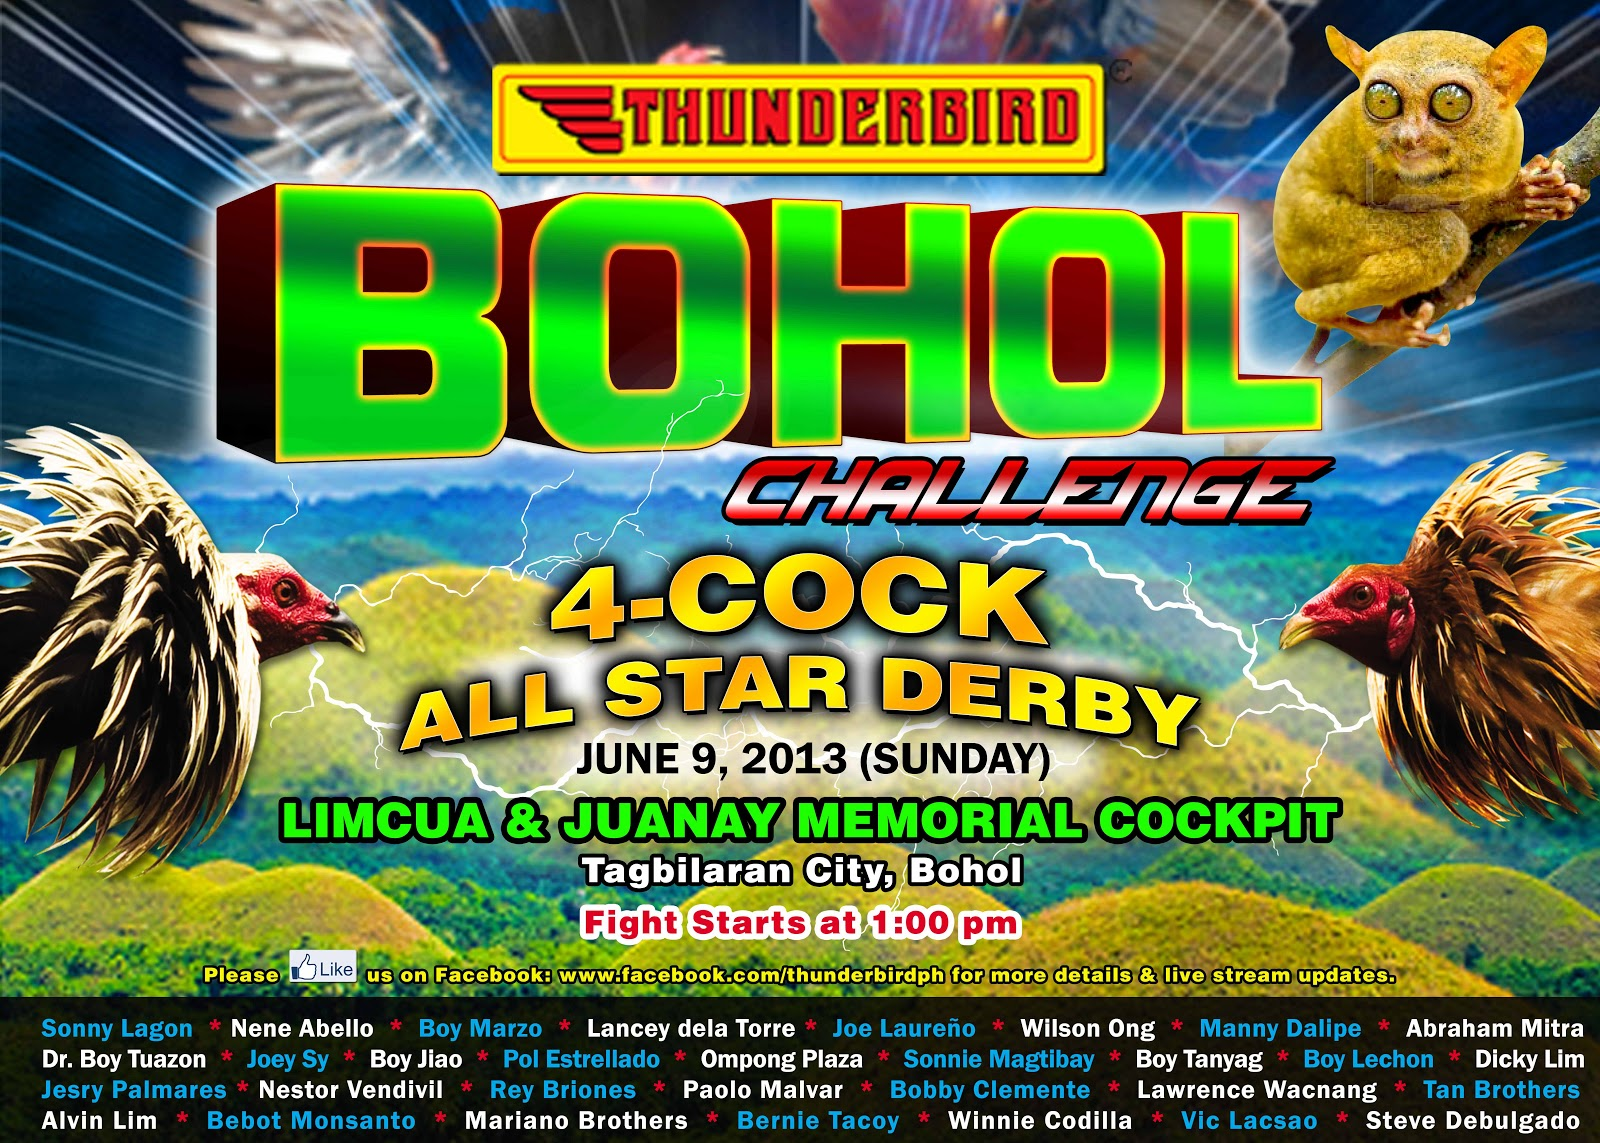 2013 THUNDERBIRD BOHOL CHALLENGE 4-COCK ALL-STAR DERBY